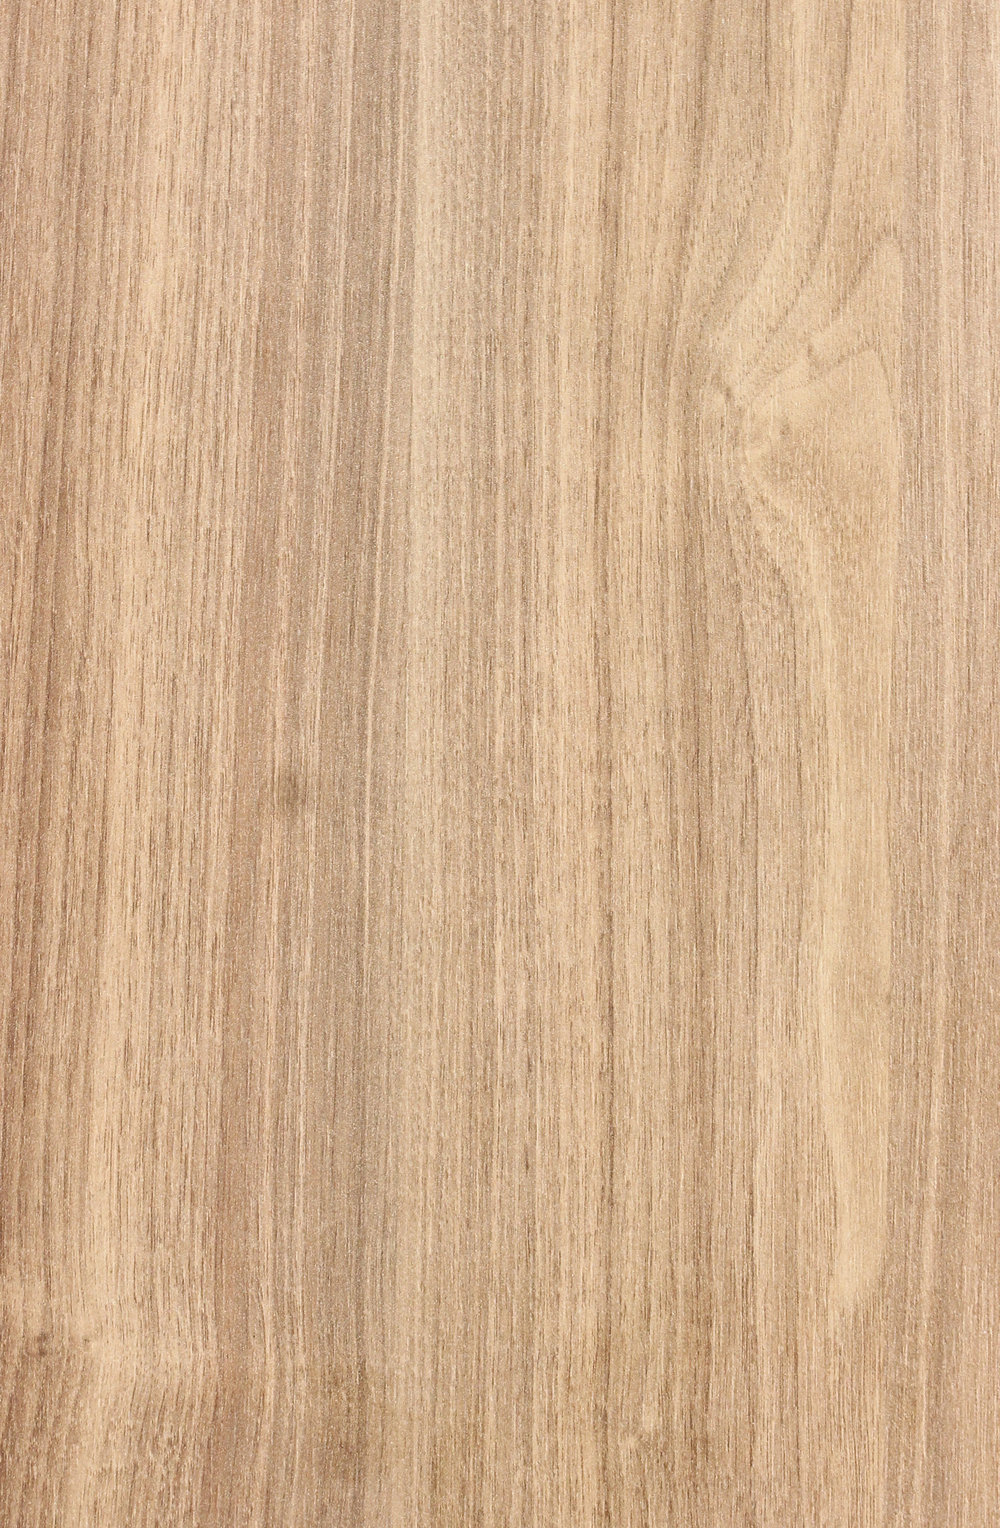 K009PW -  DARK SELECT WALNUT